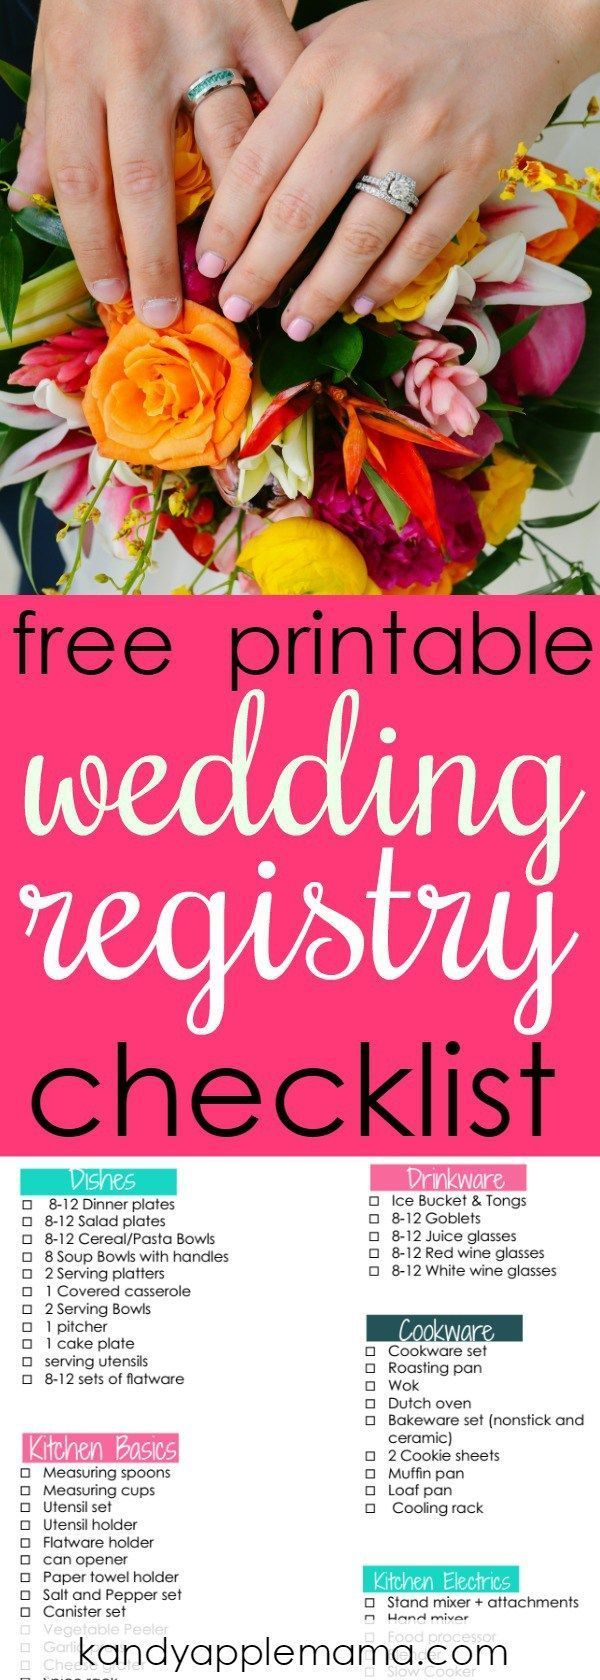 Wedding Registry The BEST Place to Register + a Registry